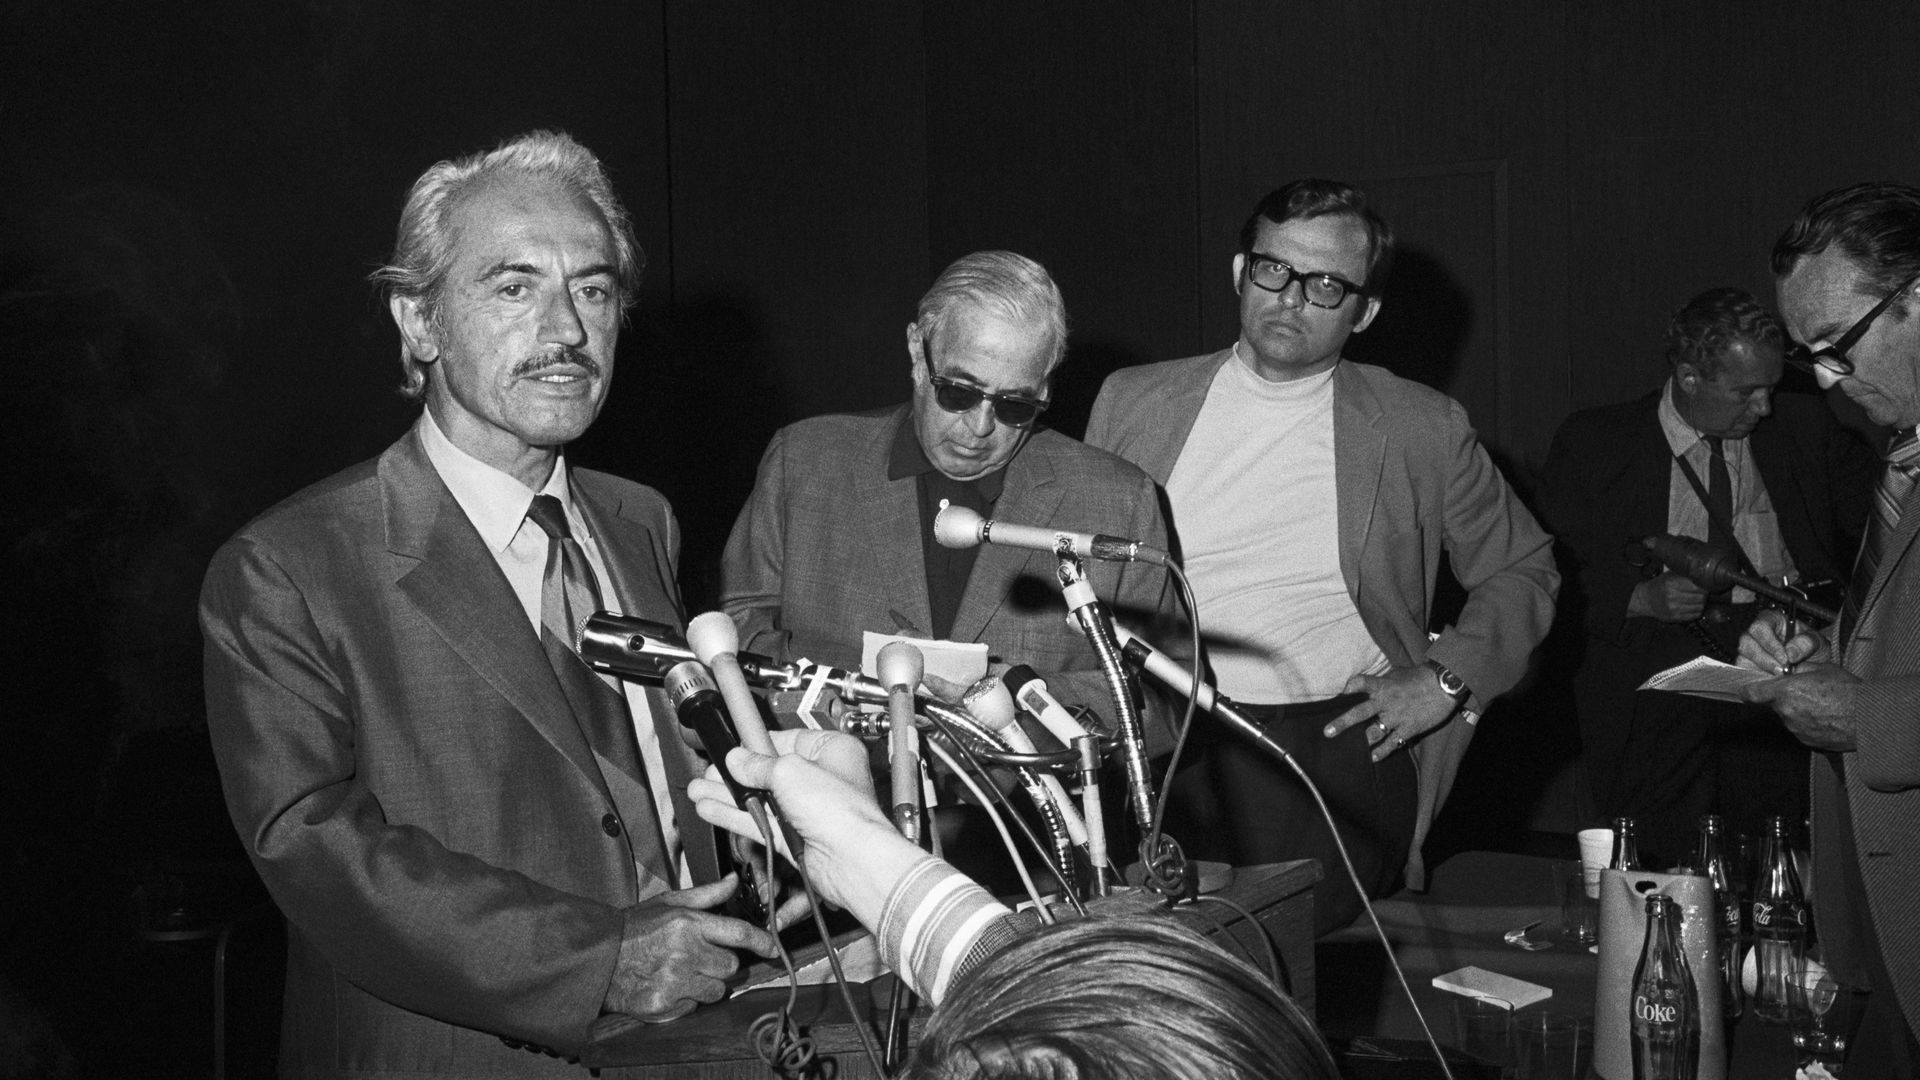 Marvin Miller, speaking in 1972